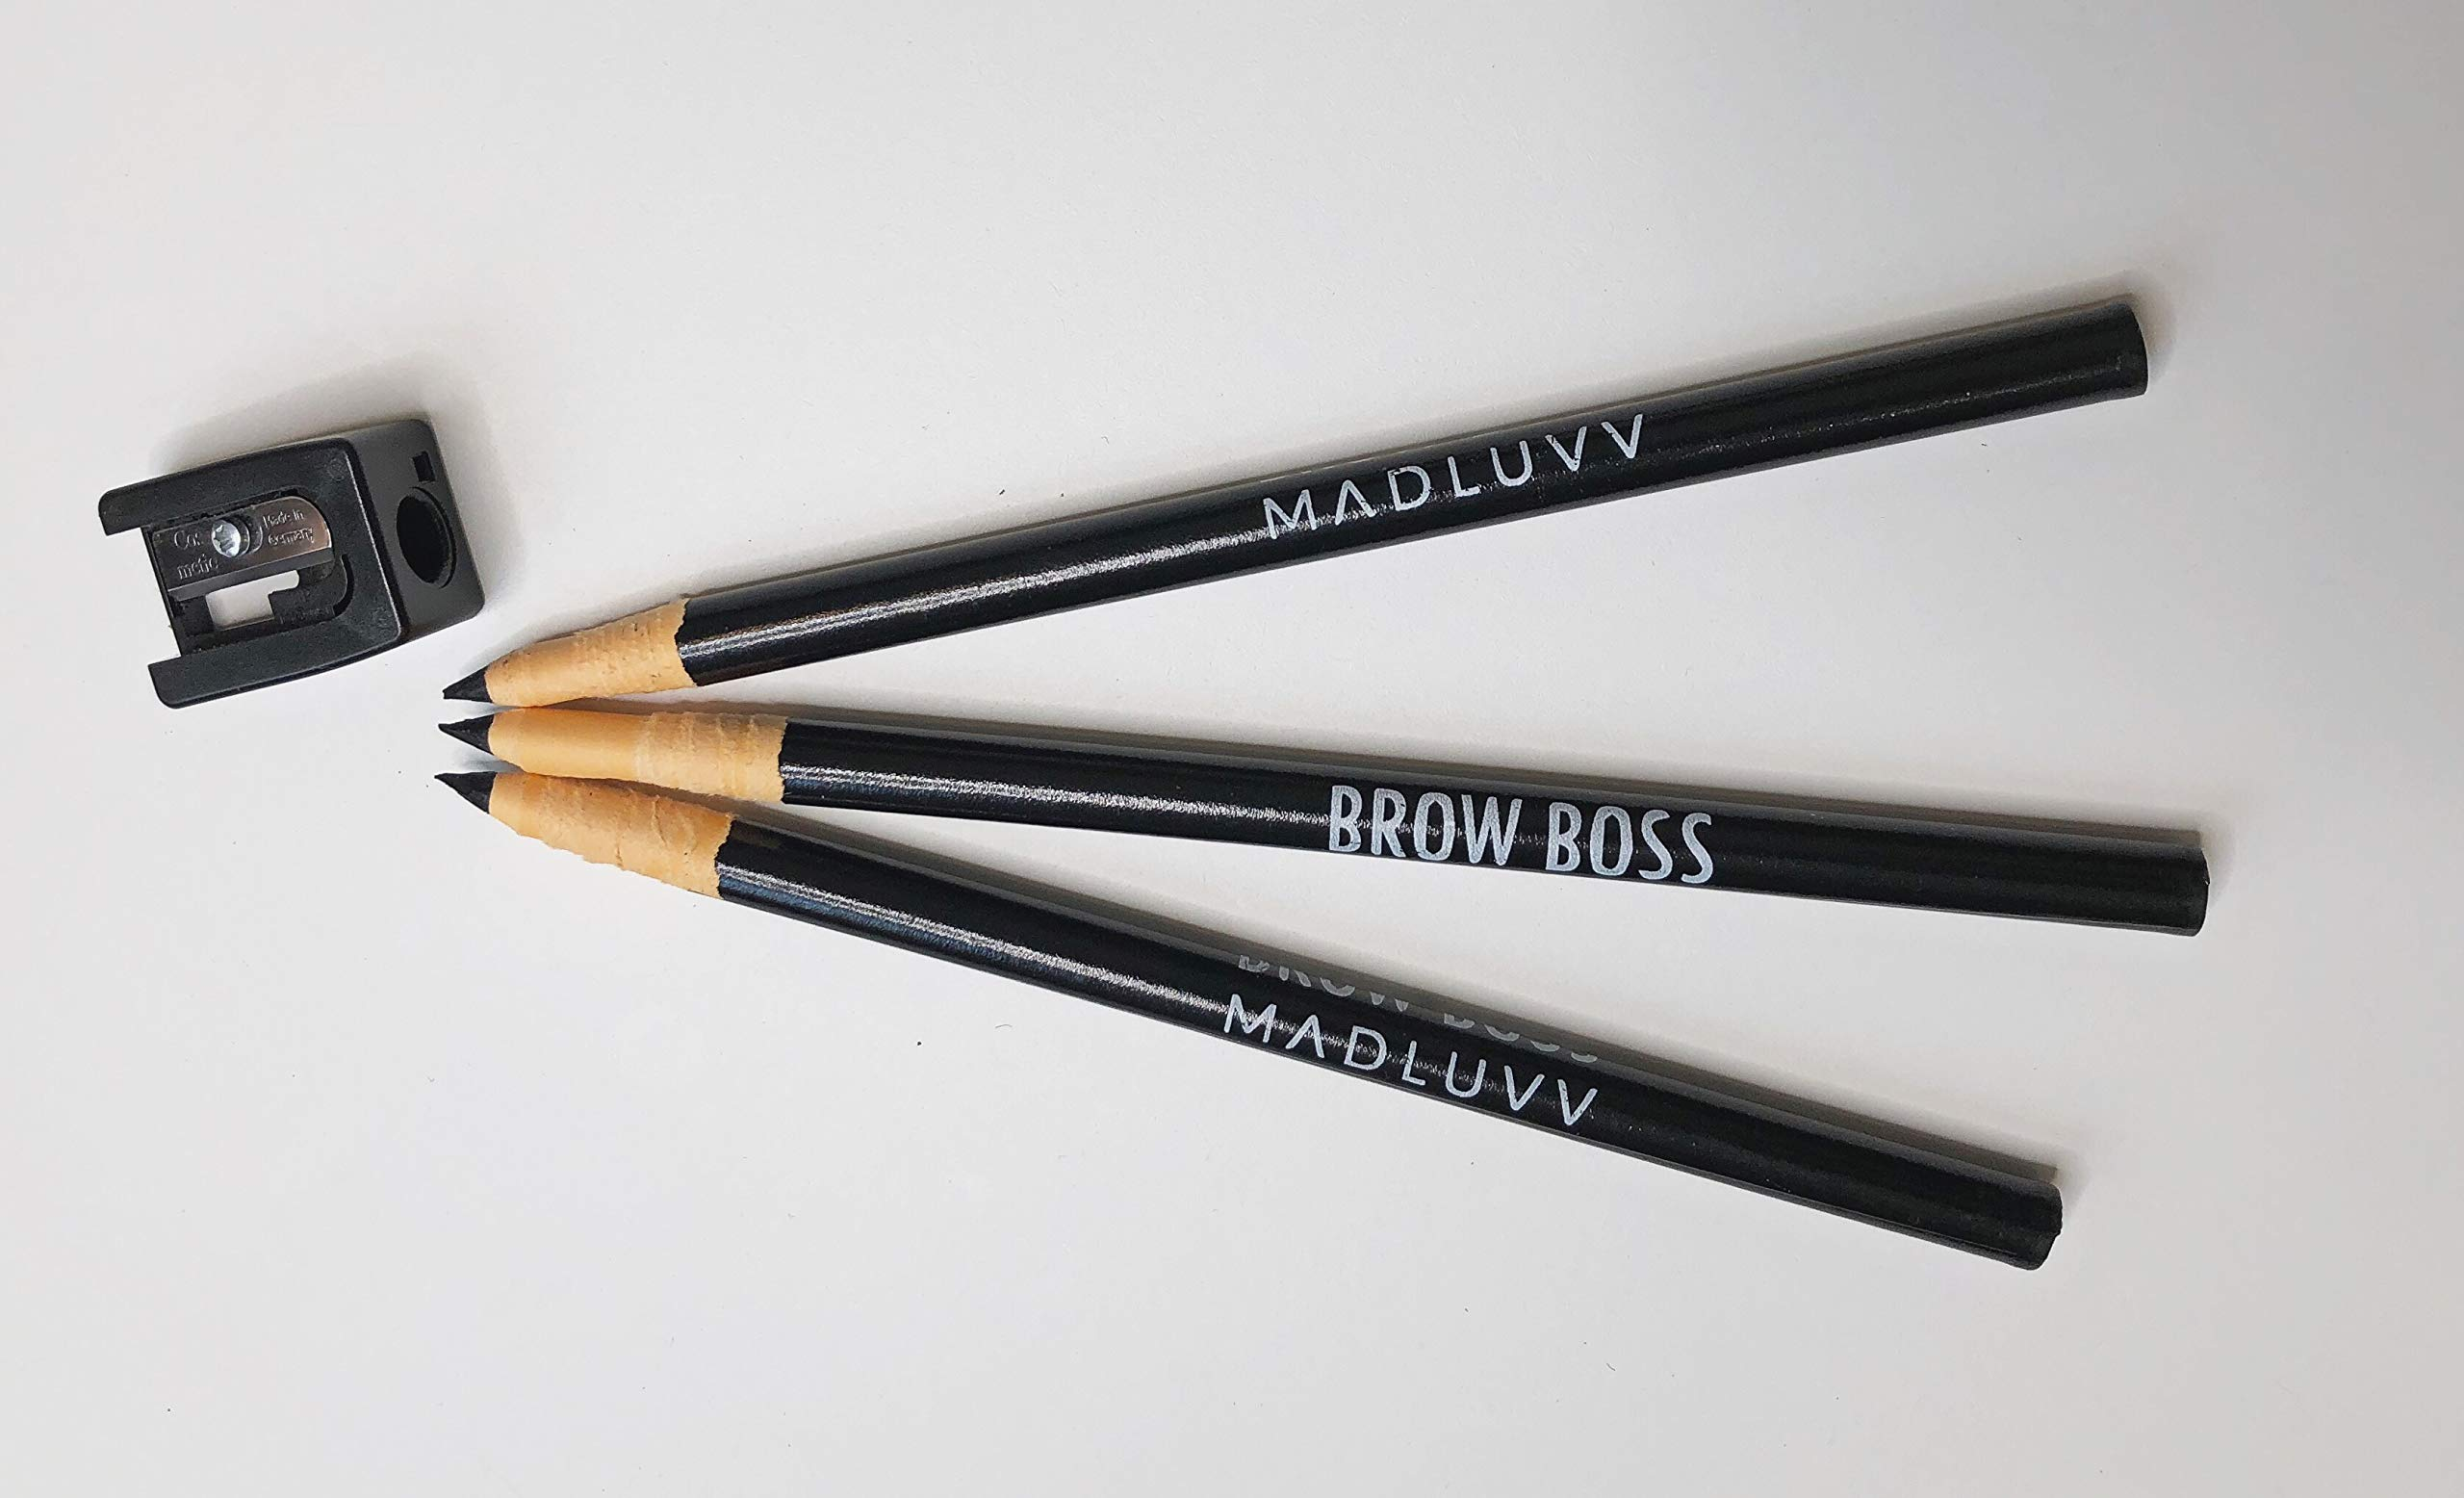 Amazon Best Eyebrow Mapping Pencil 3 Pack With Sharpener